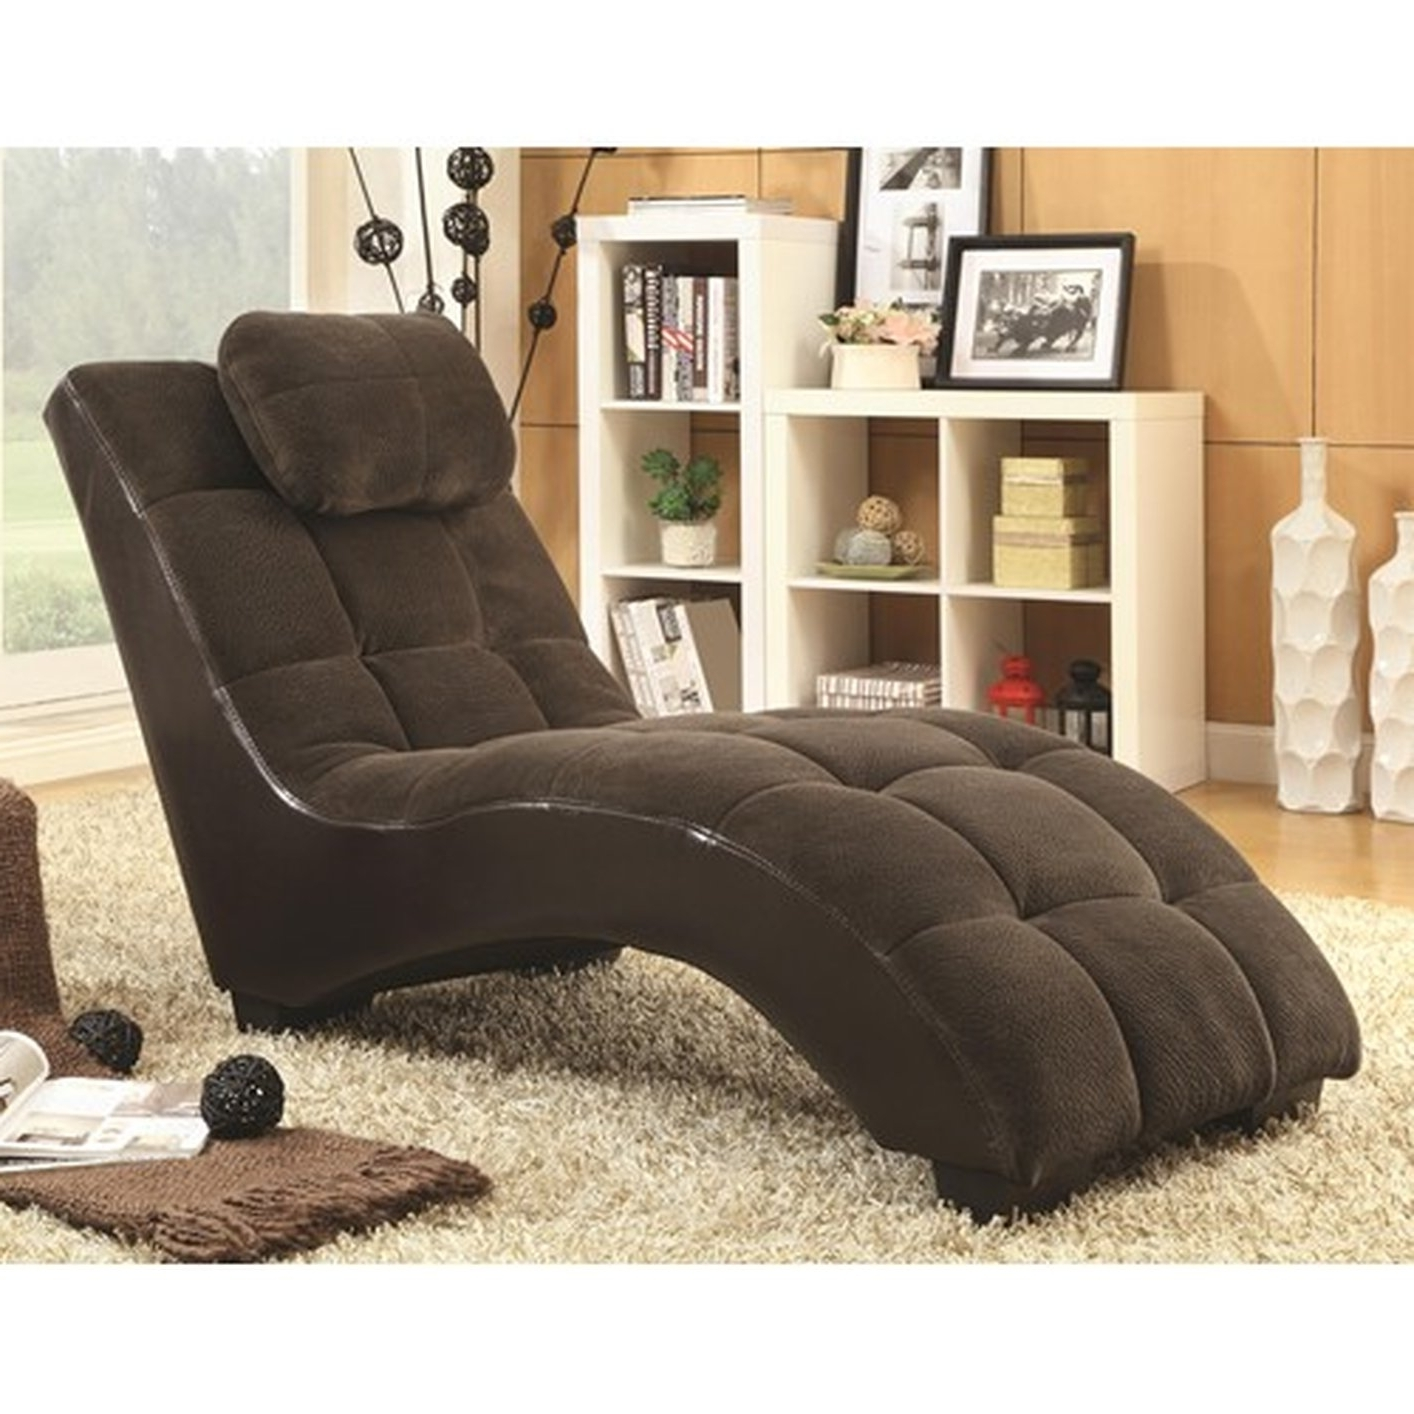 Latest Coaster Chaise Lounges Intended For Brown Fabric Chaise Lounge – Steal A Sofa Furniture Outlet Los (View 7 of 15)